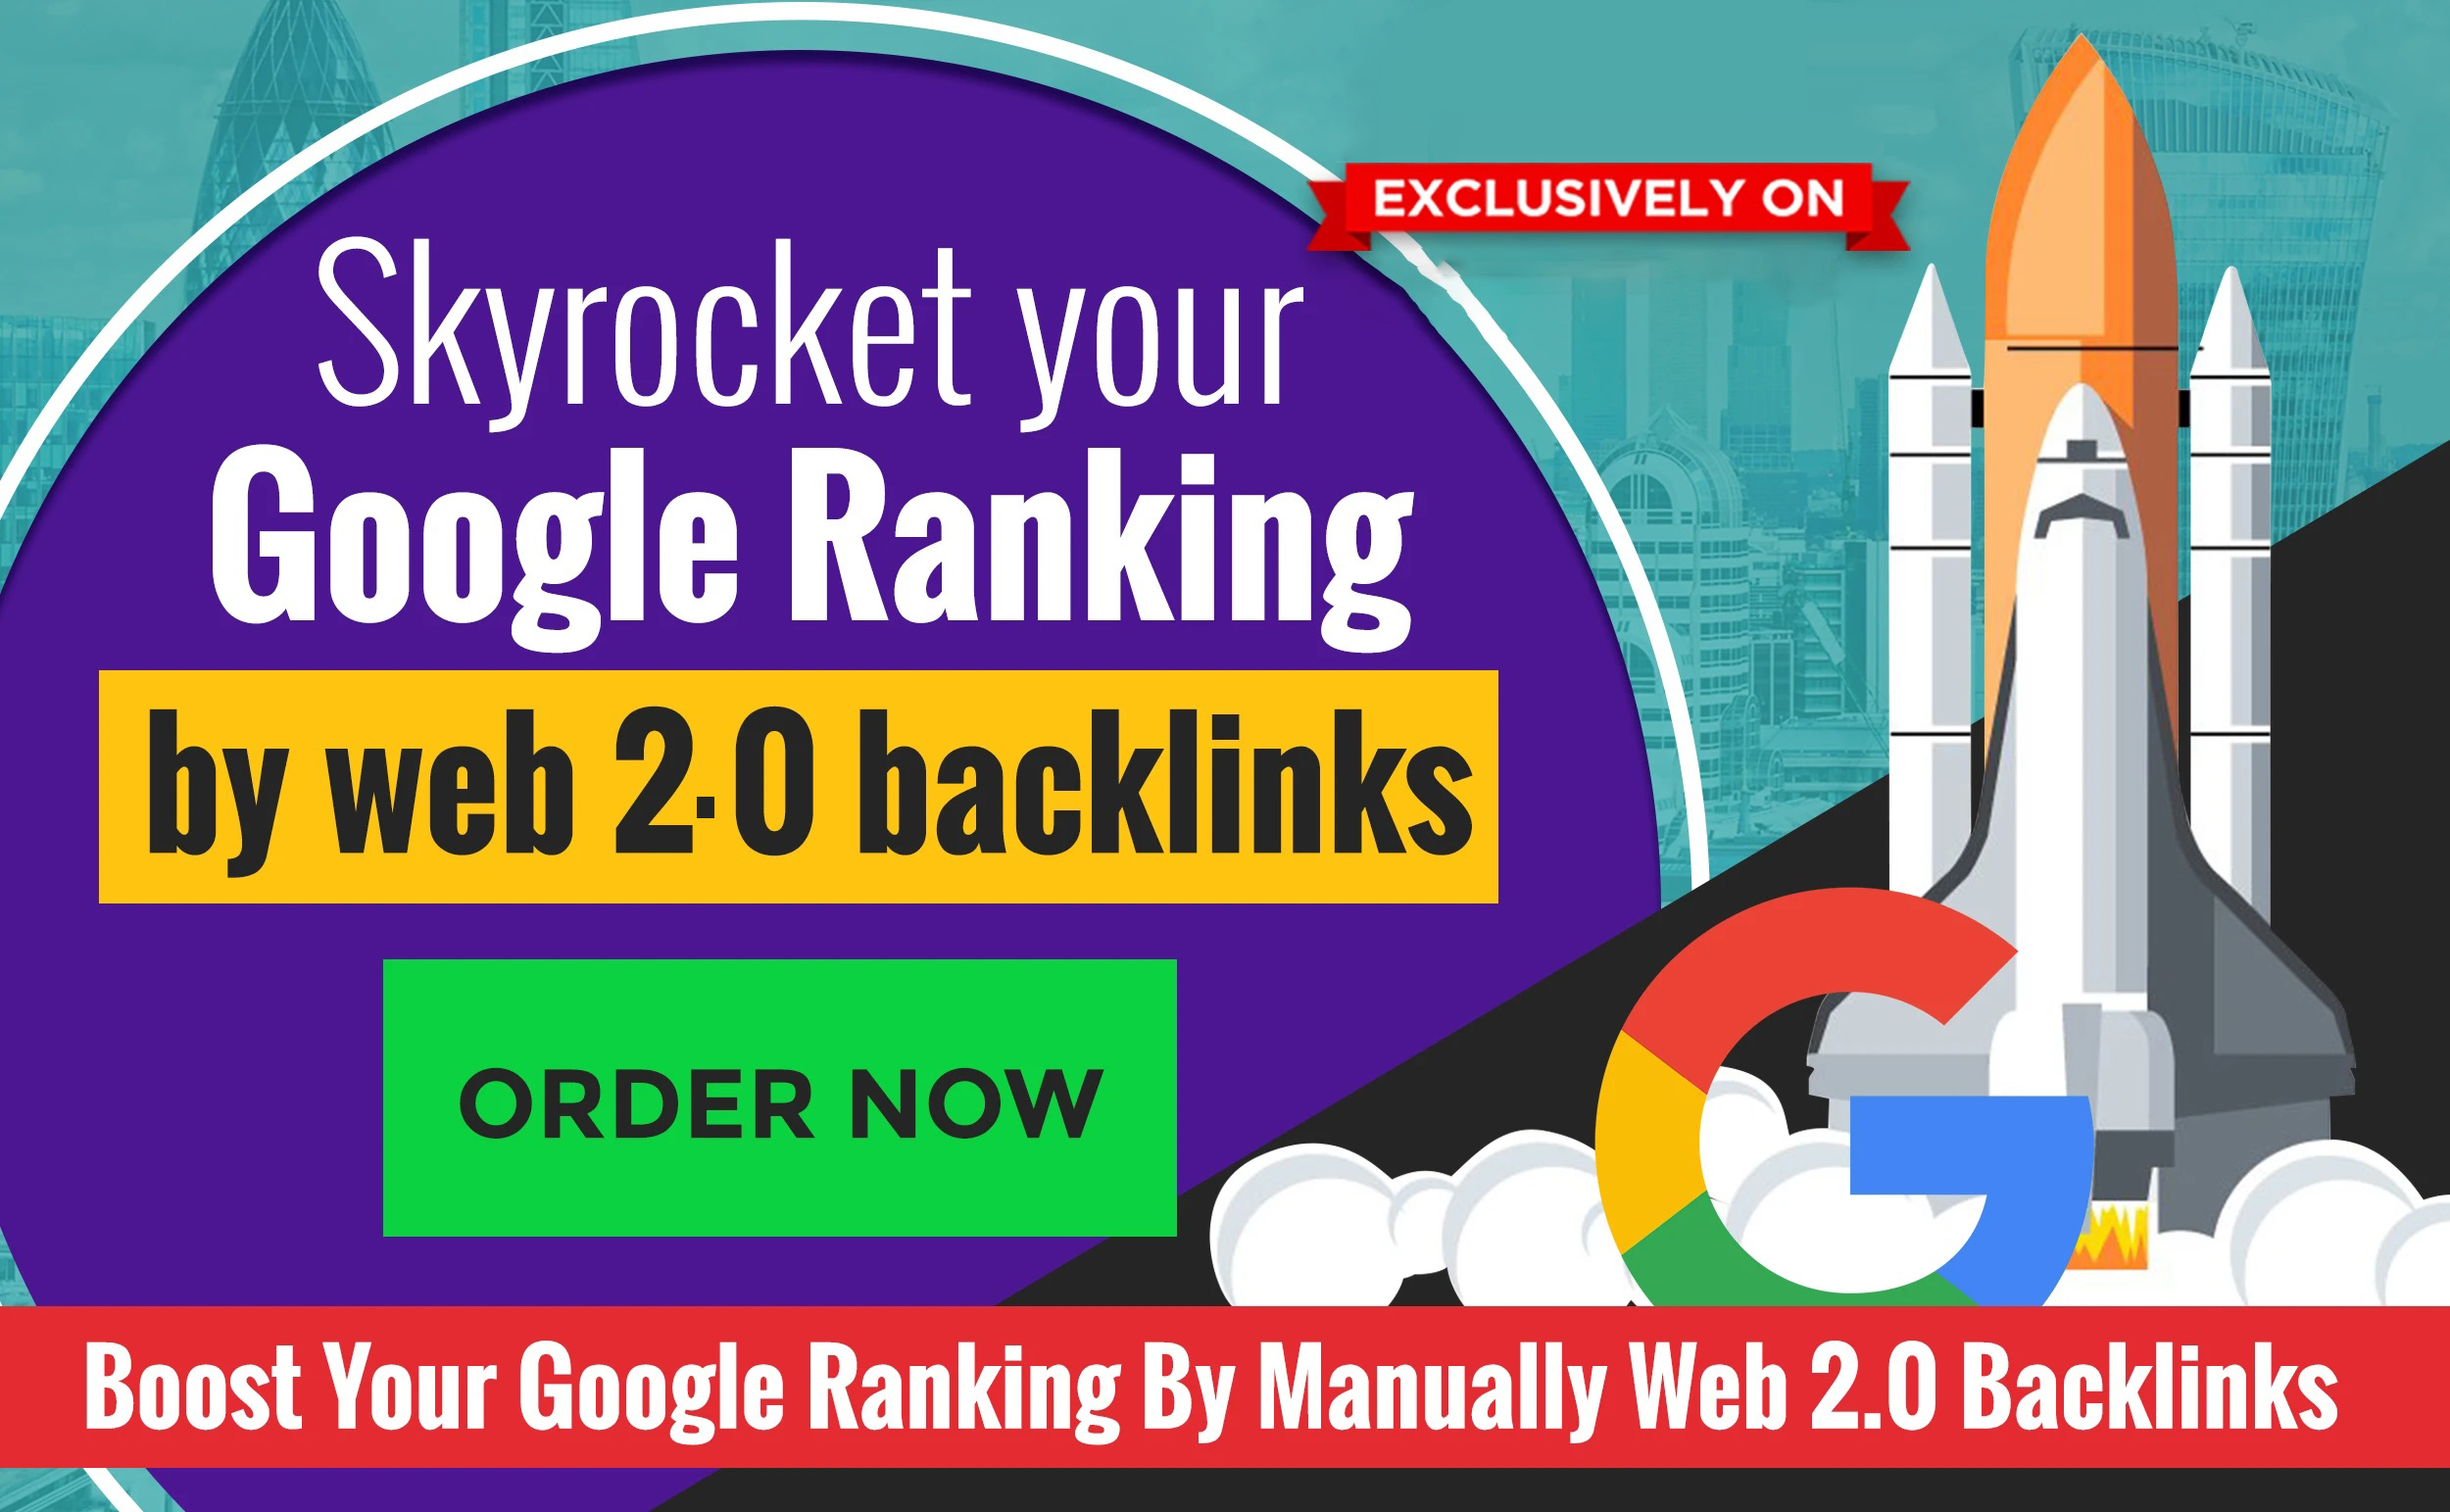 skyrocket your google ranking by web 2.0 backlinks